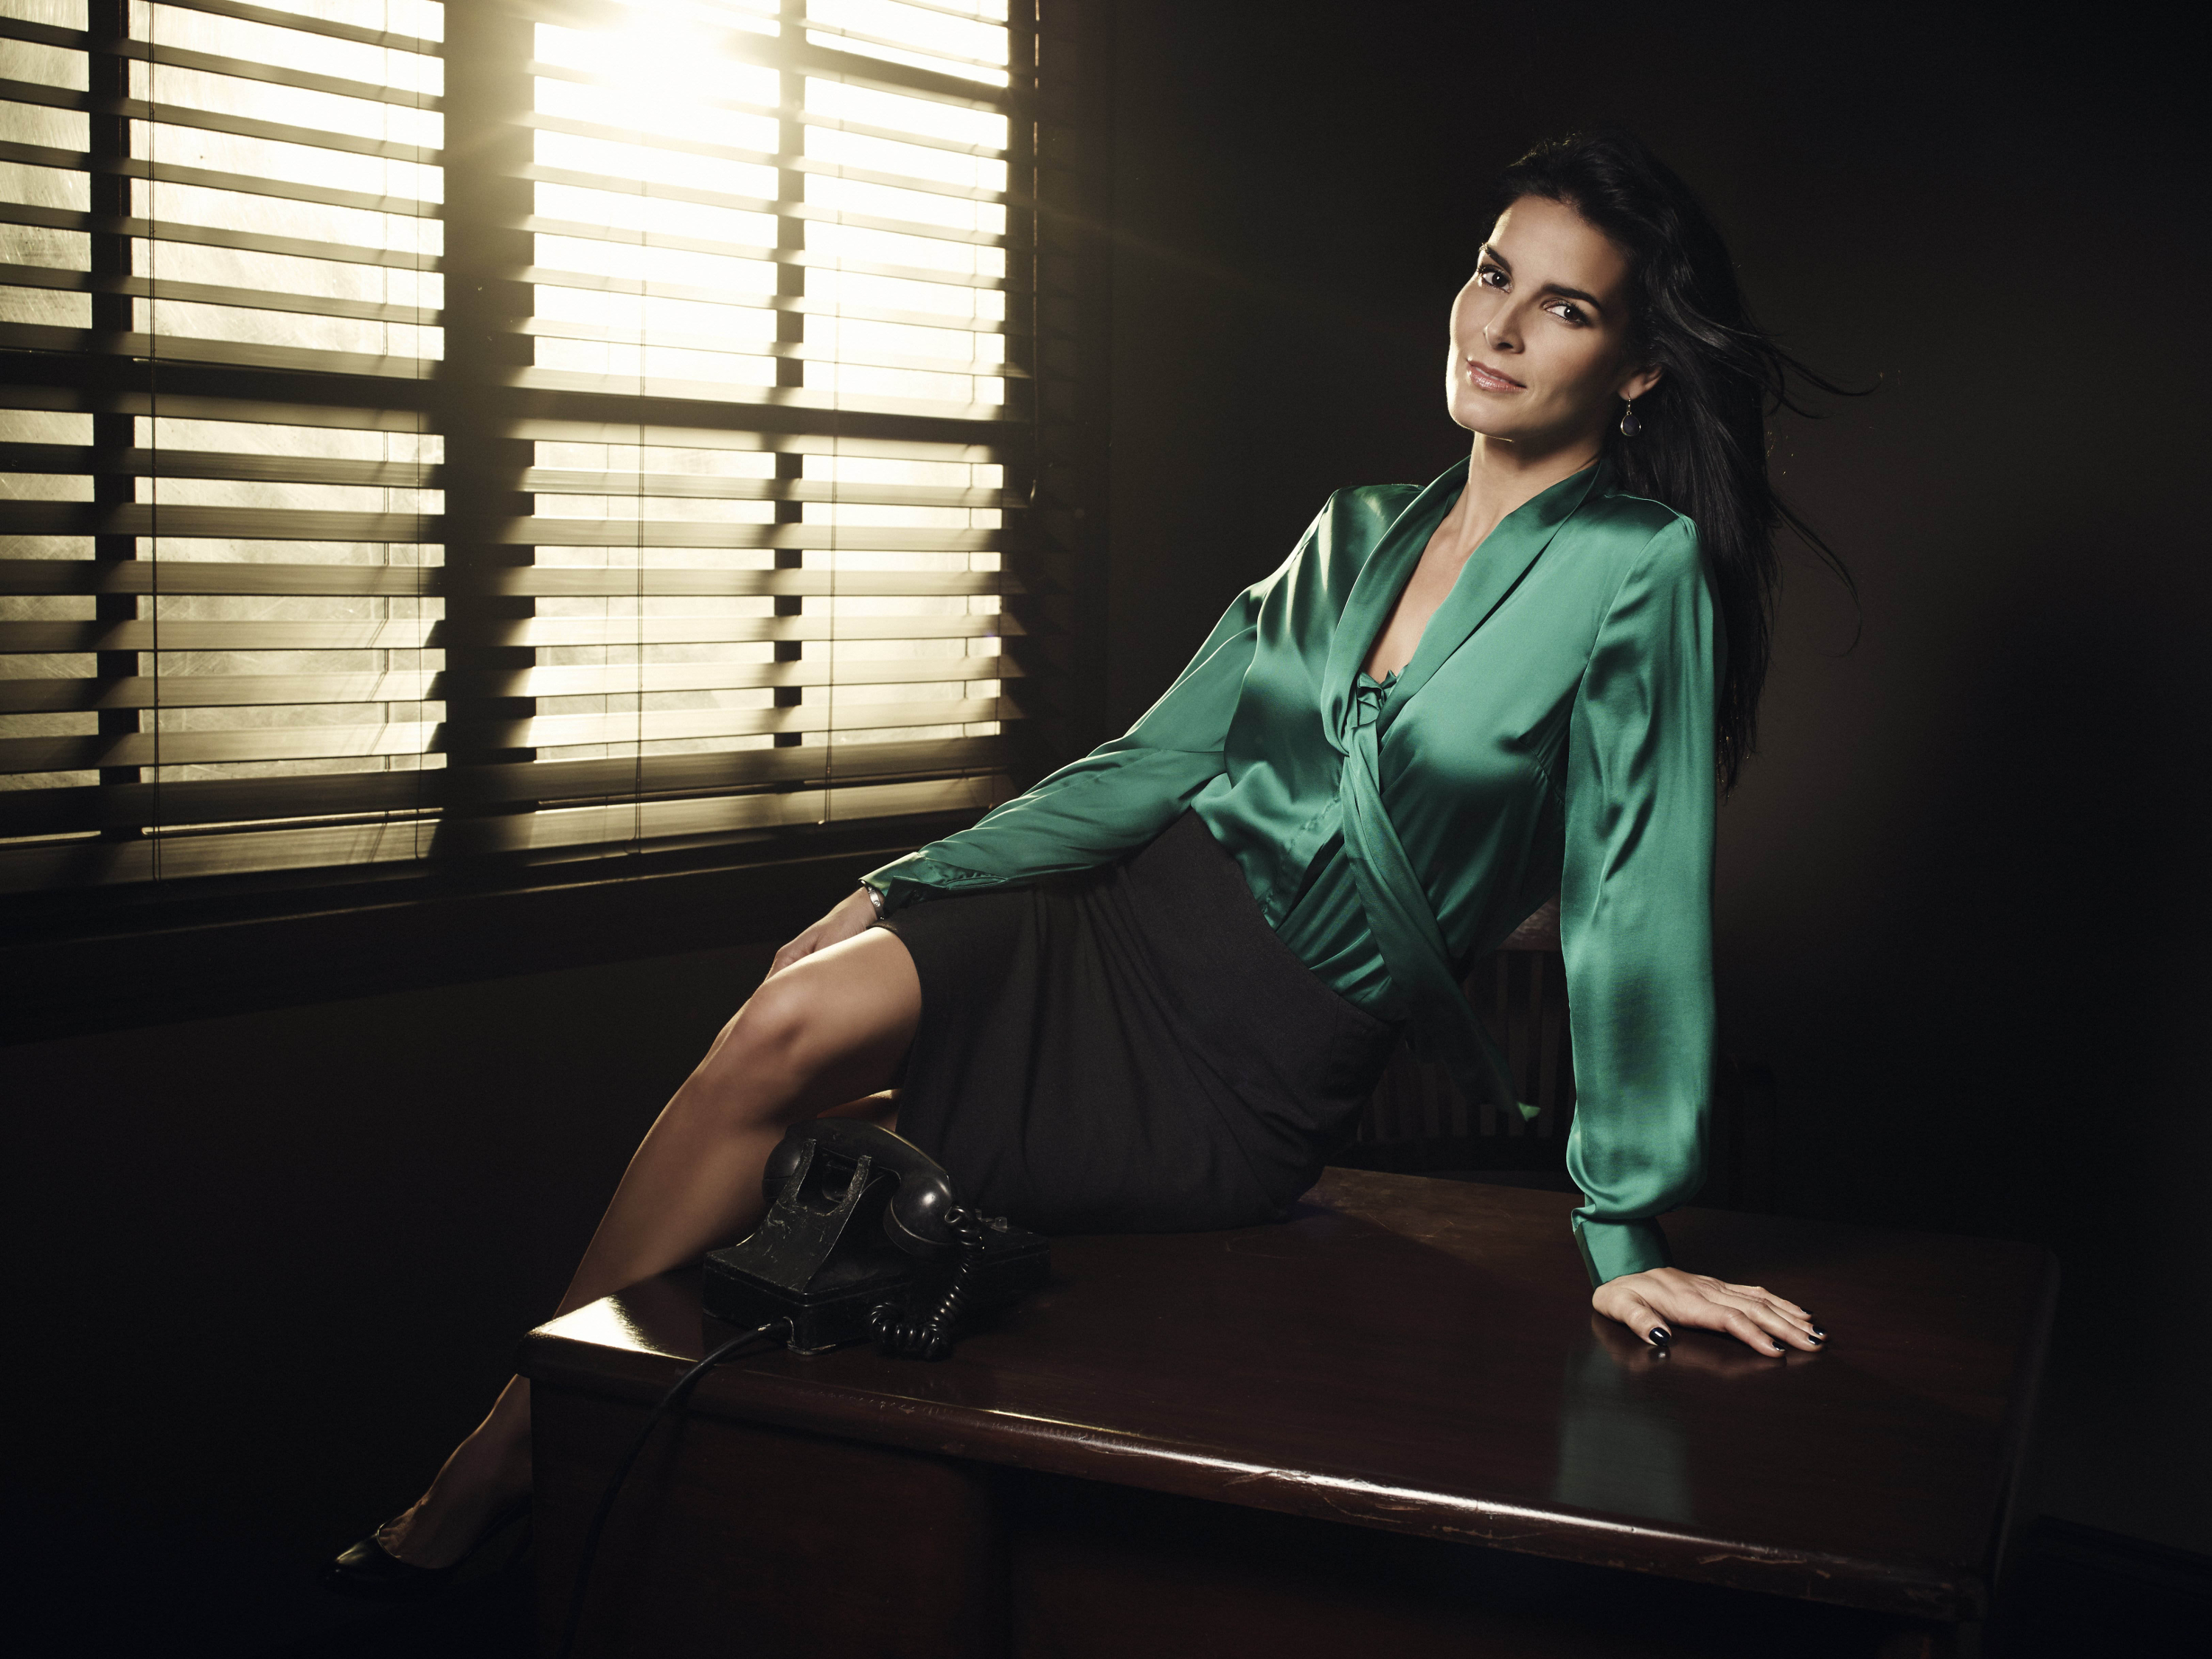 3000x2250 - Angie Harmon Wallpapers 7